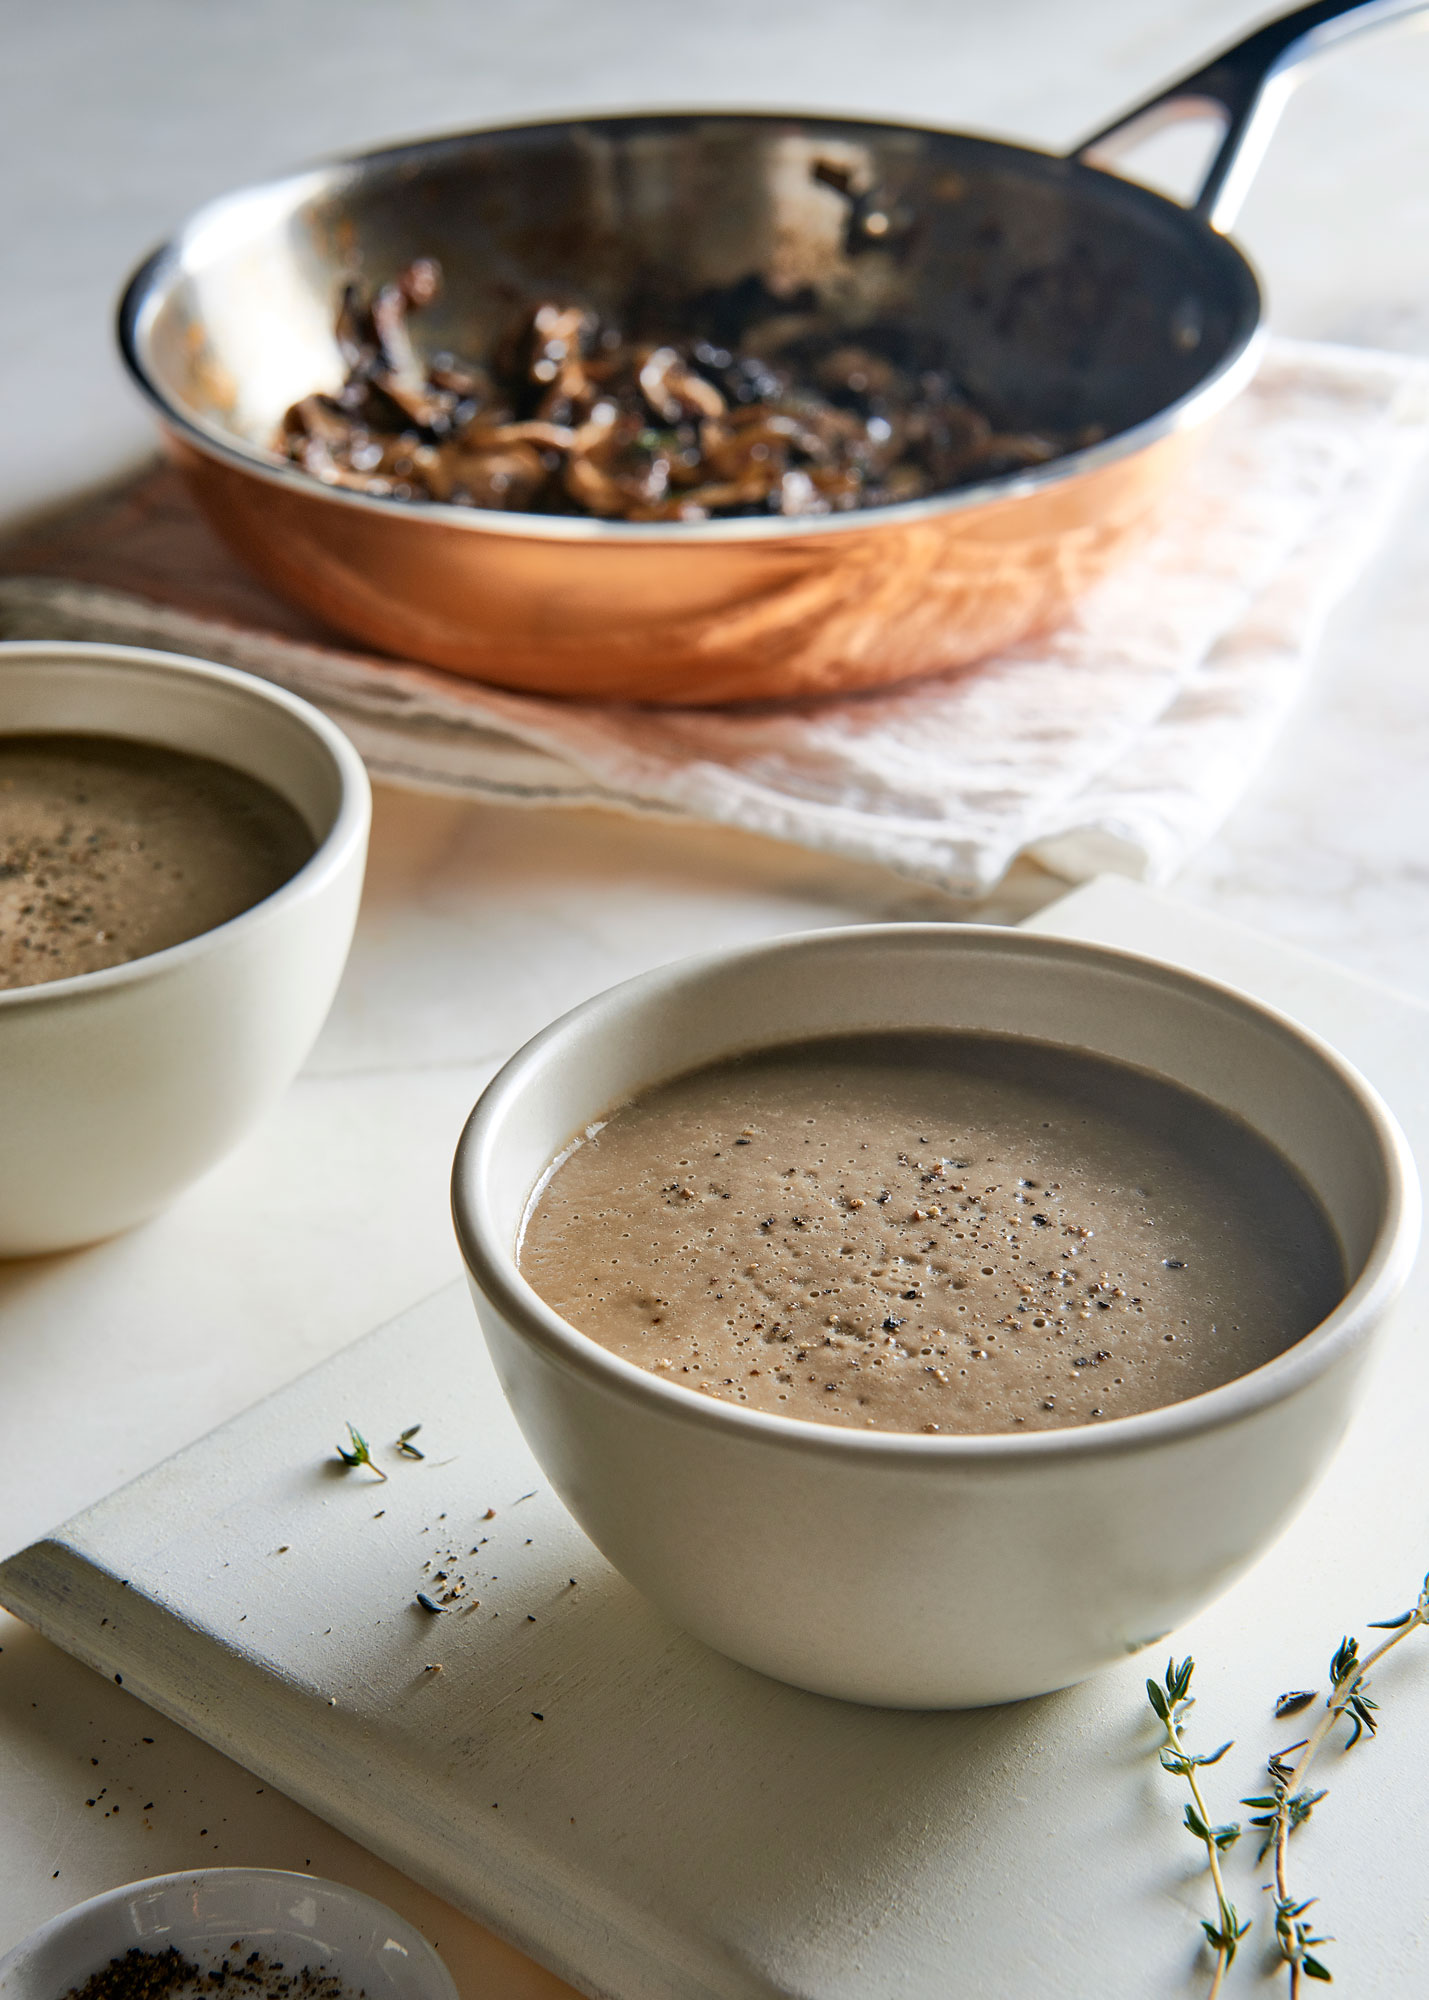 Two white bowls of creamy magic mushroom soup.